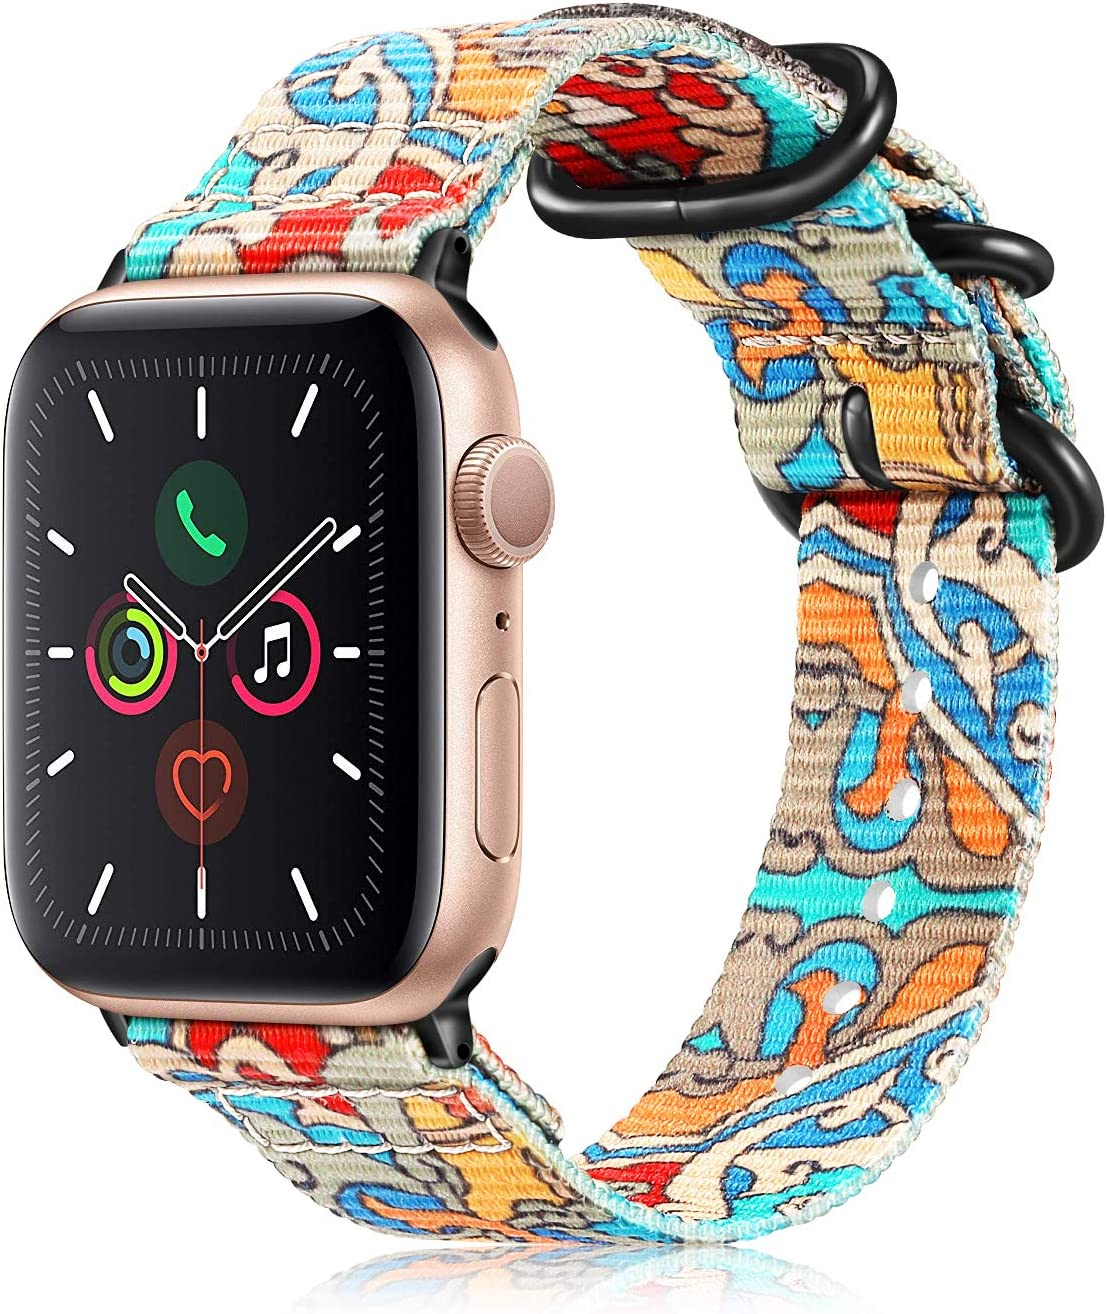 Fintie Band Compatible with Apple Watch 44mm 42mm Series 6/5/4/3/2/1 iWatch SE, Lightweight Breathable Woven Nylon Sport Wrist Strap with Metal Buckle Compatible All Versions 44mm 42mm Apple Watch